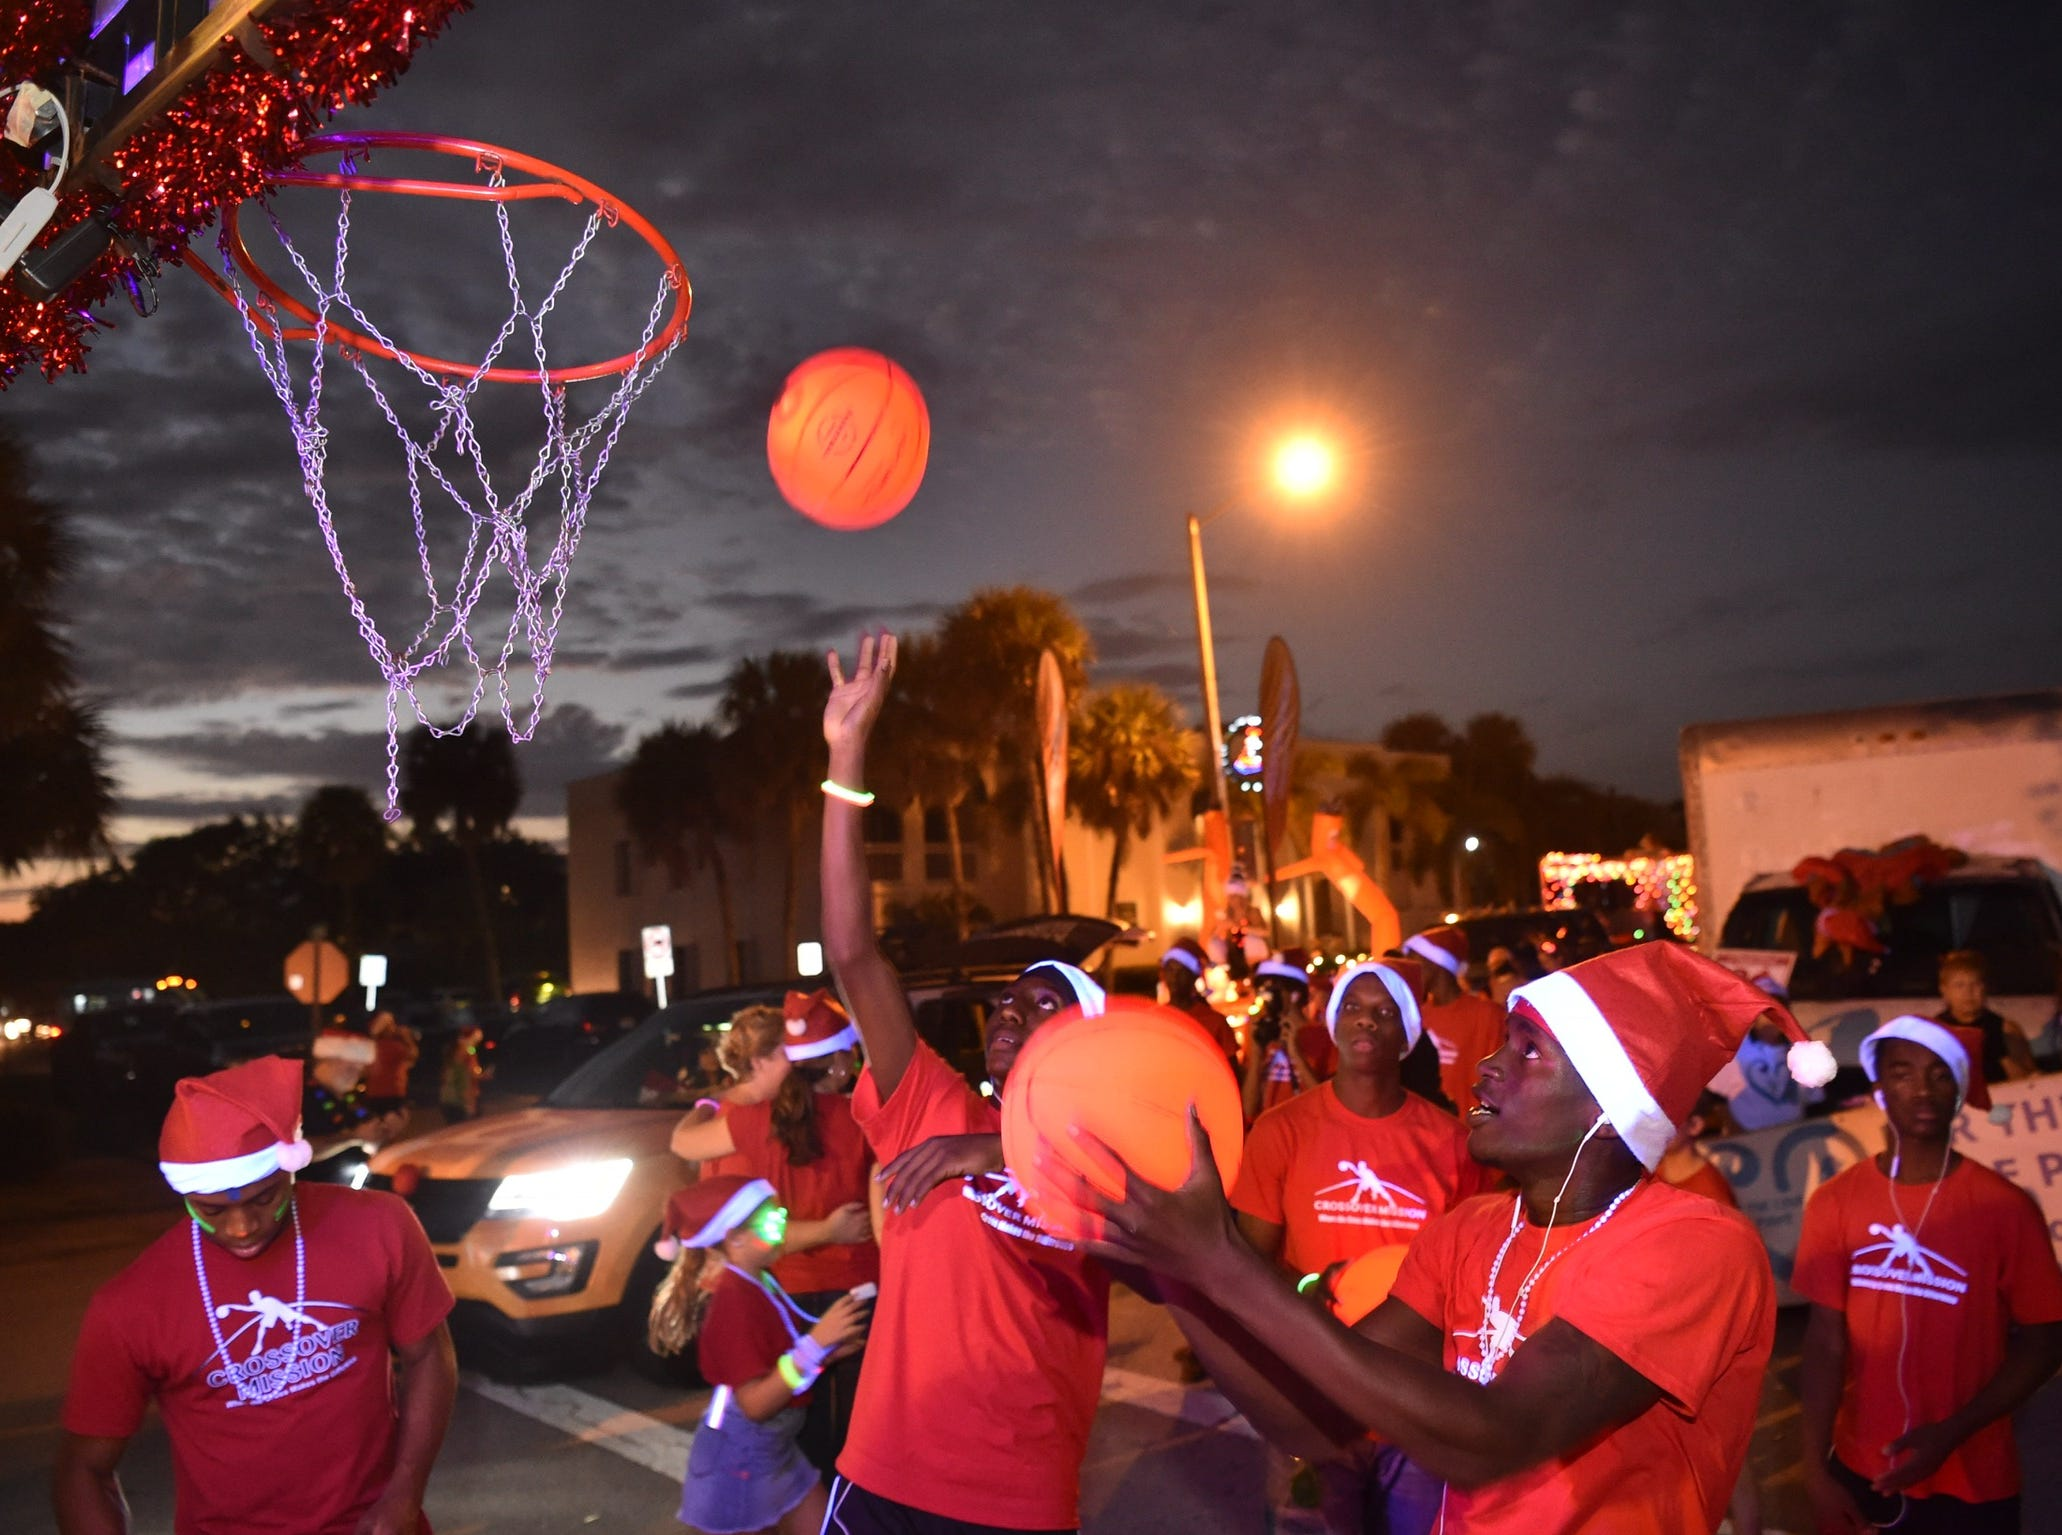 "Evan Chambliss (right), 18, of Vero Beach, with the Crossover Mission float, prepares to walk in the 34th annual Centennial Christmas Parade along Ocean Drive on Saturday, Dec. 1, 2018, in Vero Beach. ""I become a better player in basketball and school academics,"" he said of the organization, which he has been a part of for four years. ""My job tonight is just to amaze the crowd with my dribbling,  and staying focused on my dribble routine."" The fourth annual Candy Cane 3K preceded the parade."